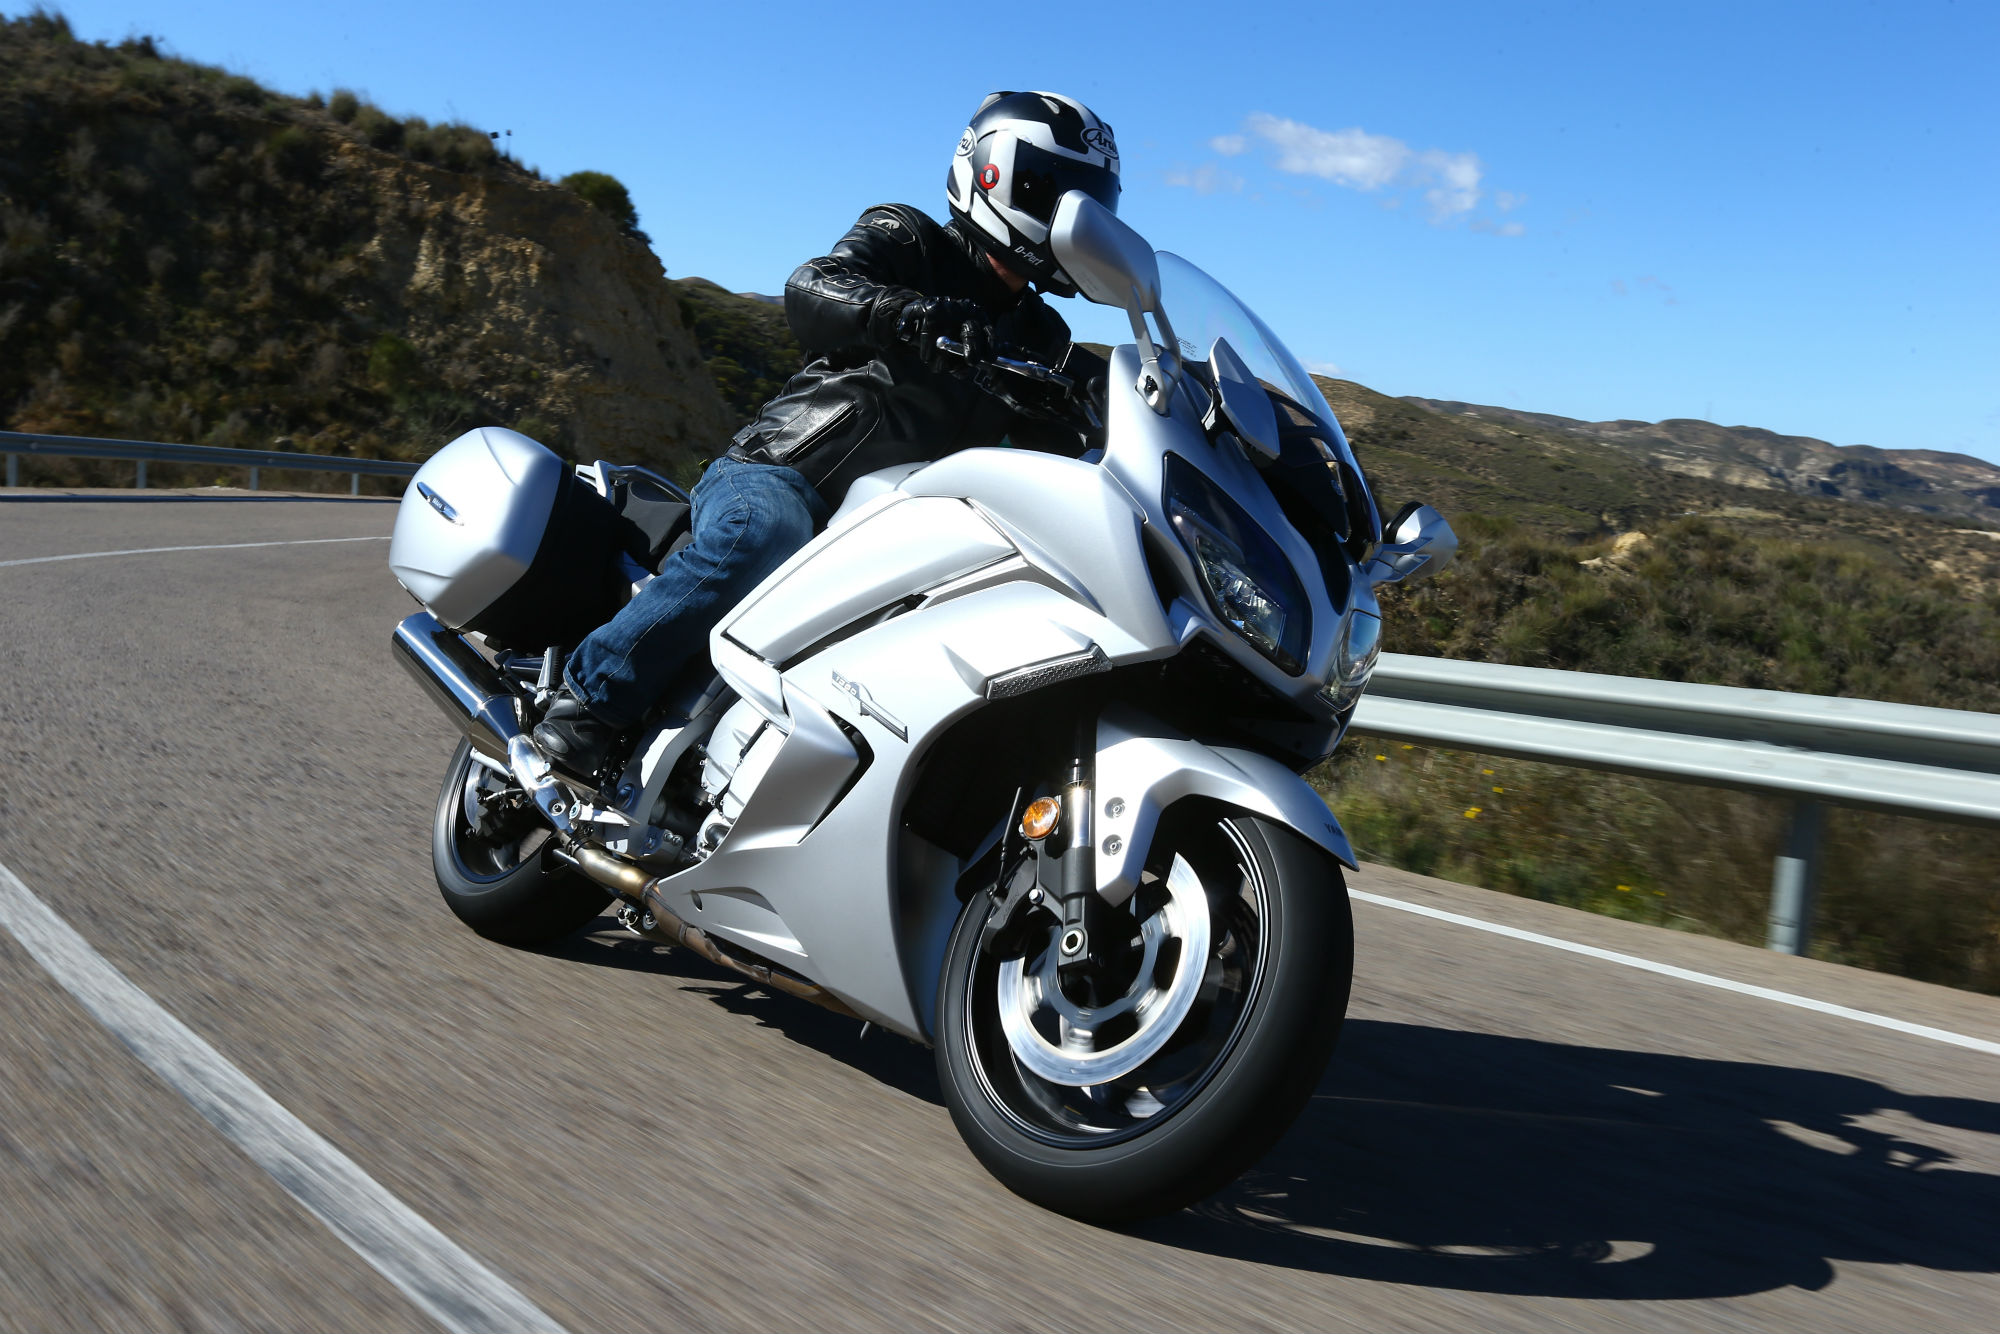 3322cowboys additionally Weise Victory Tan Gloves together with Peugeot Django Sport 125cc Bleu France besides Anime angels and demons besides Coolingsystem. on glove box for yamaha motorcycle